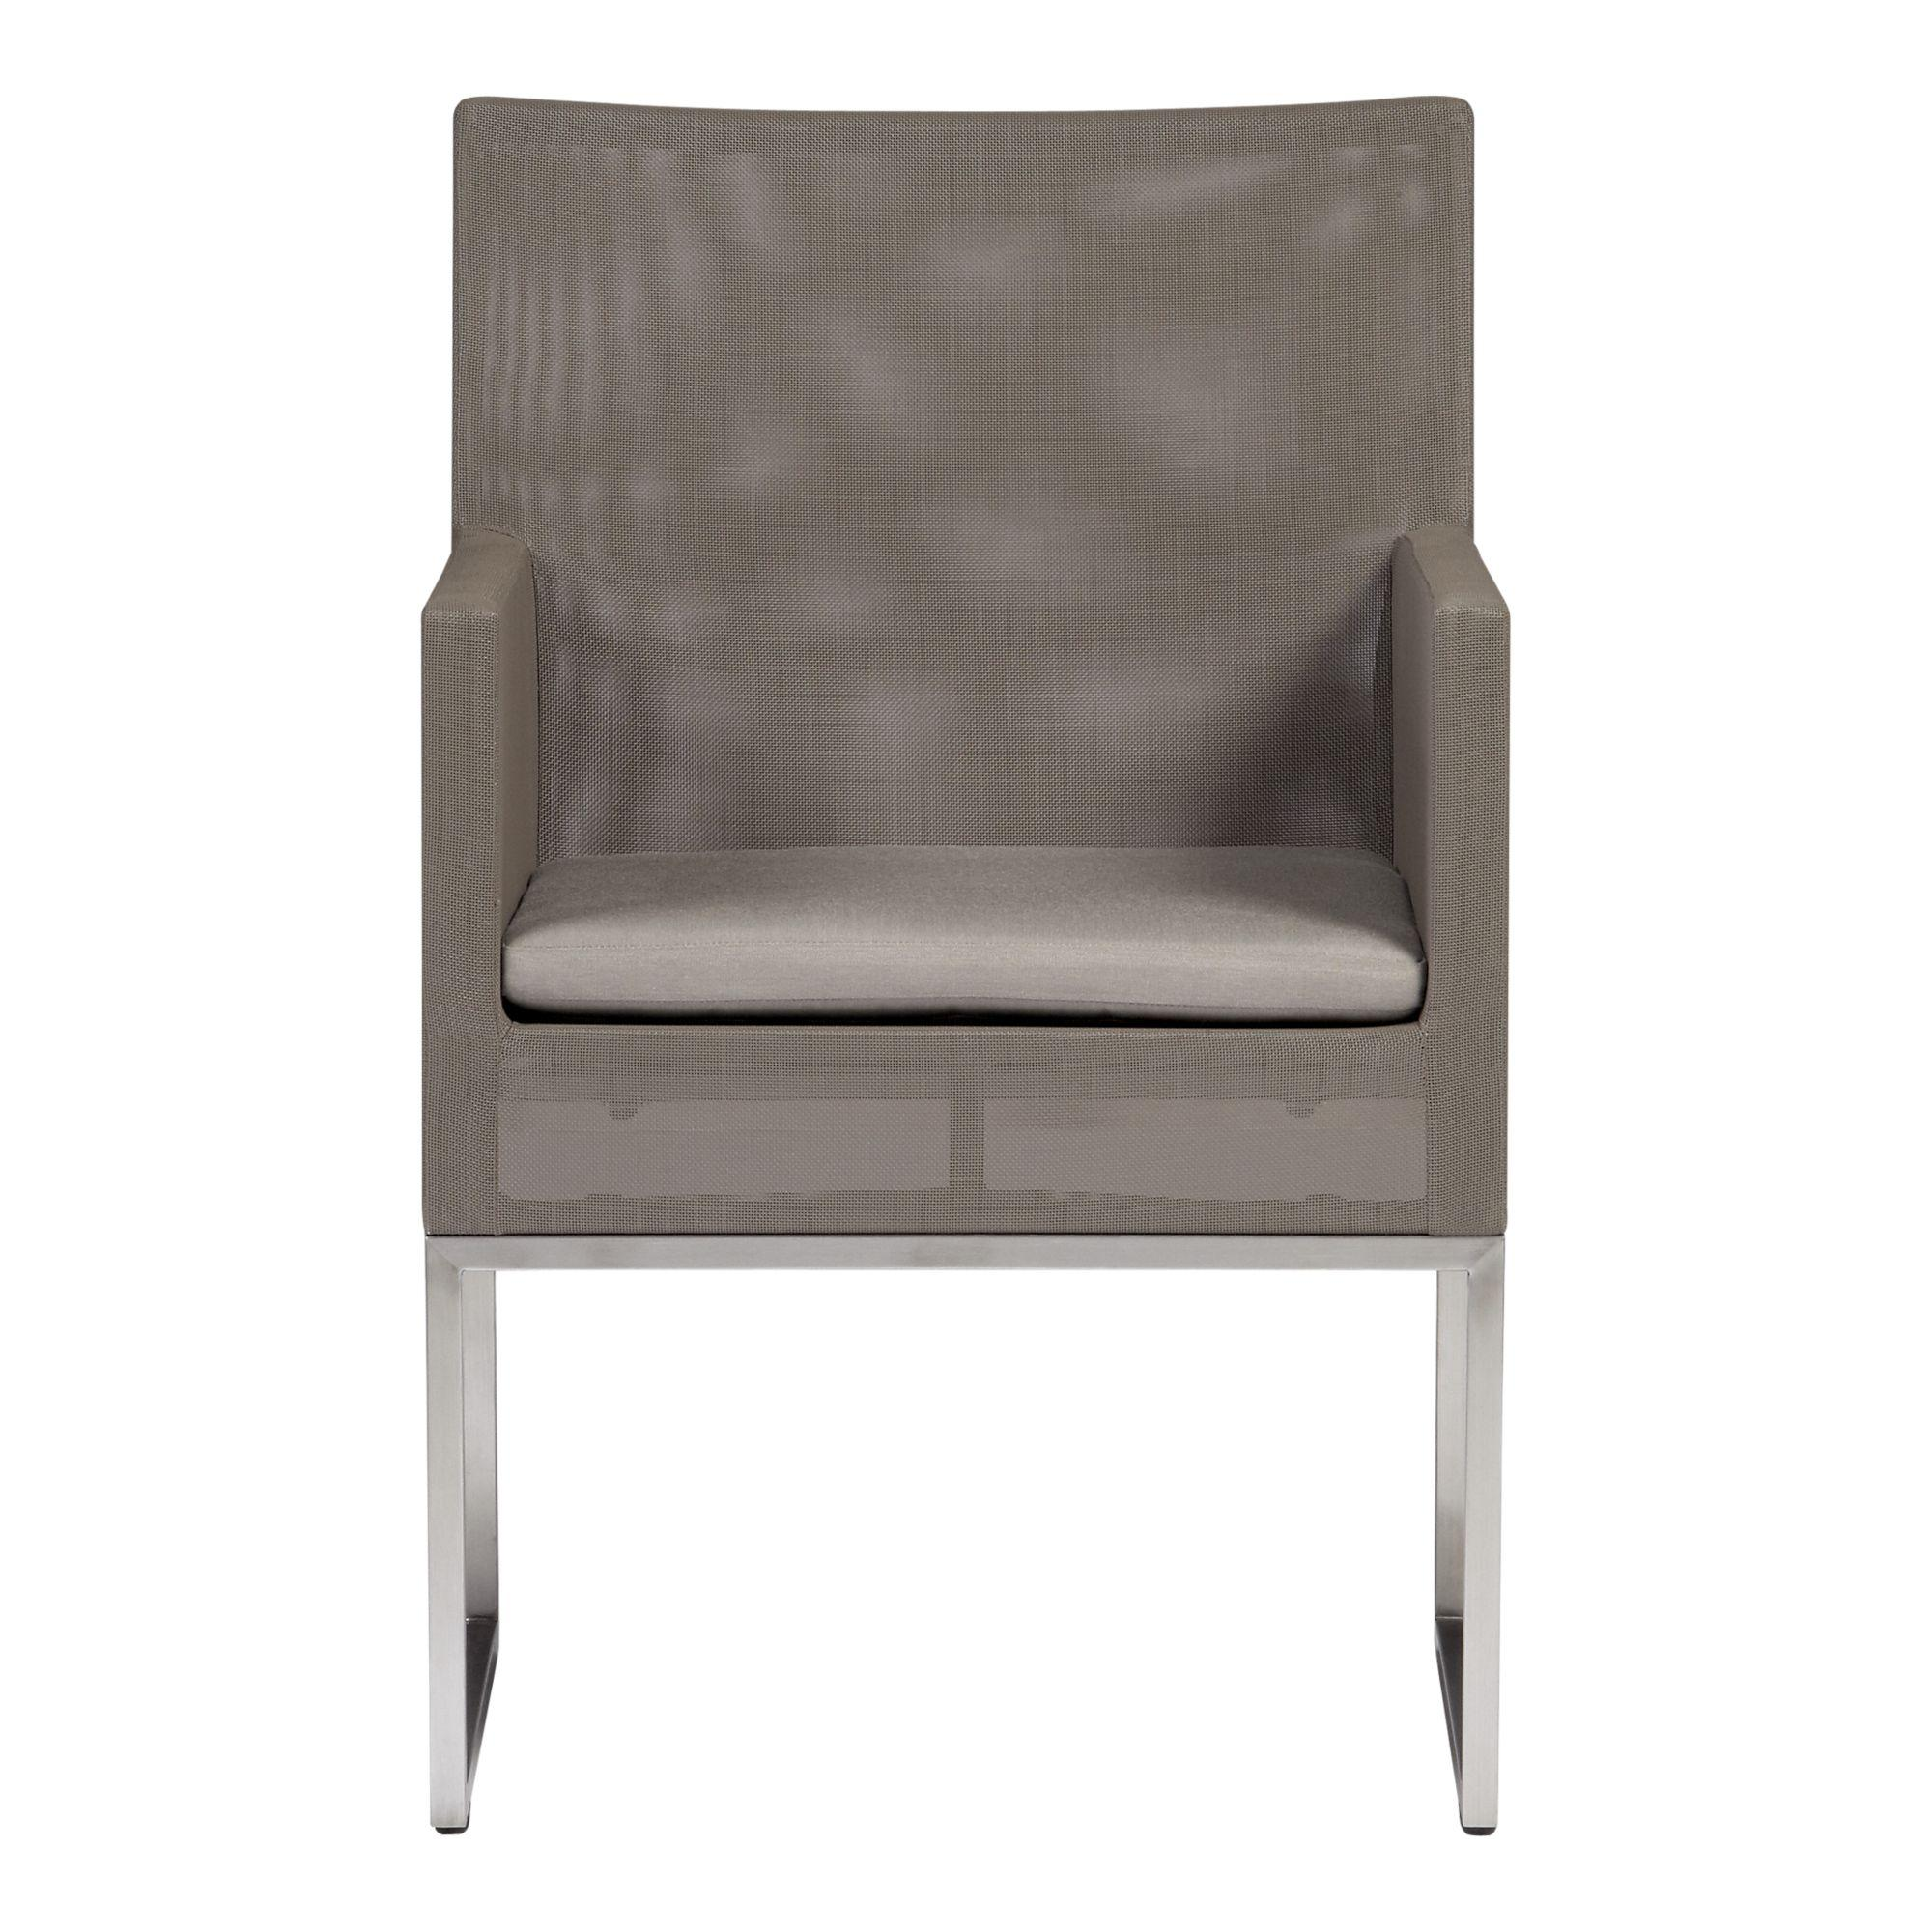 Dune Dining Chair with Sunbrella® Taupe Cushion in Outdoor Dining   Crate and Barrel